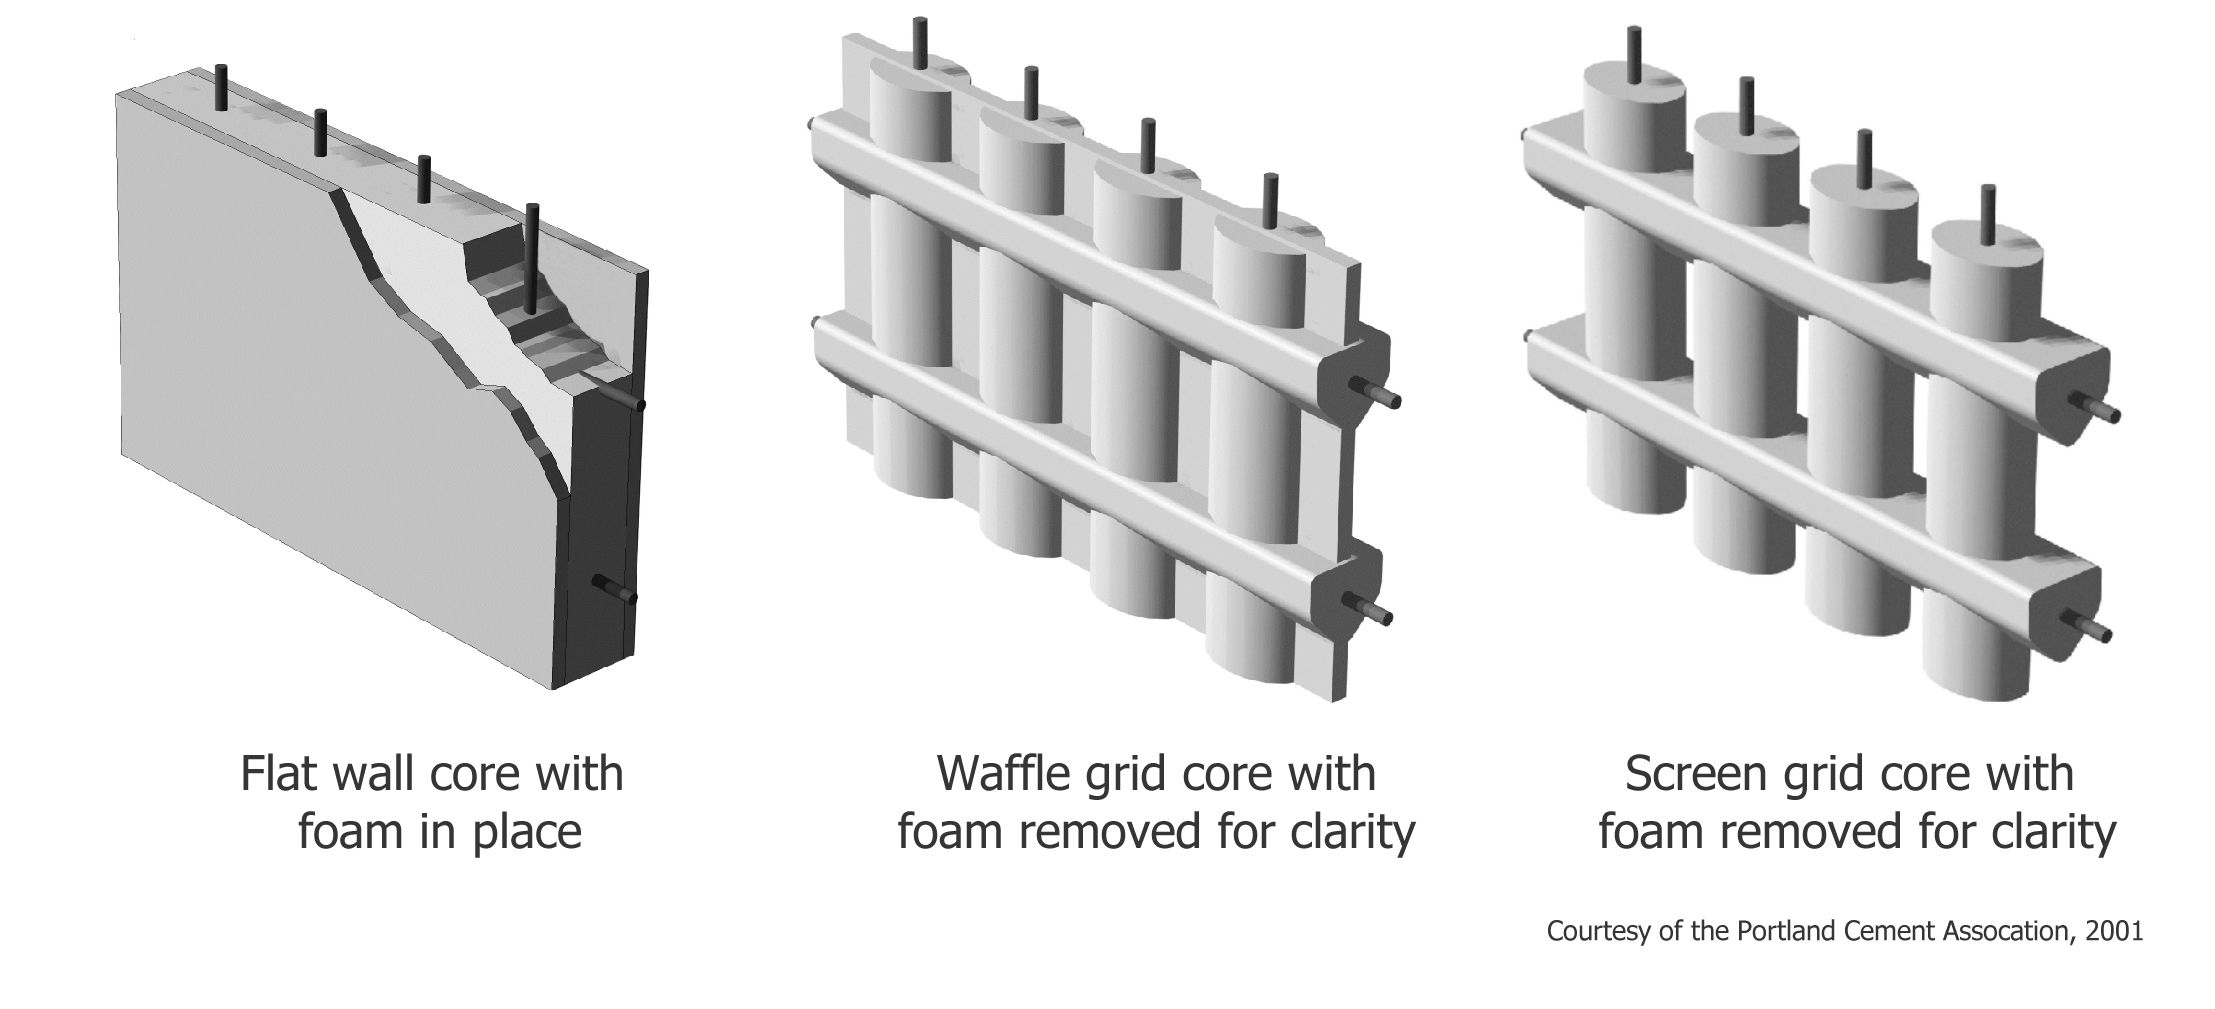 Making Cement Forms 3 Types Of Insulated Concrete Forms Icf Flat Wall Waffle Grid